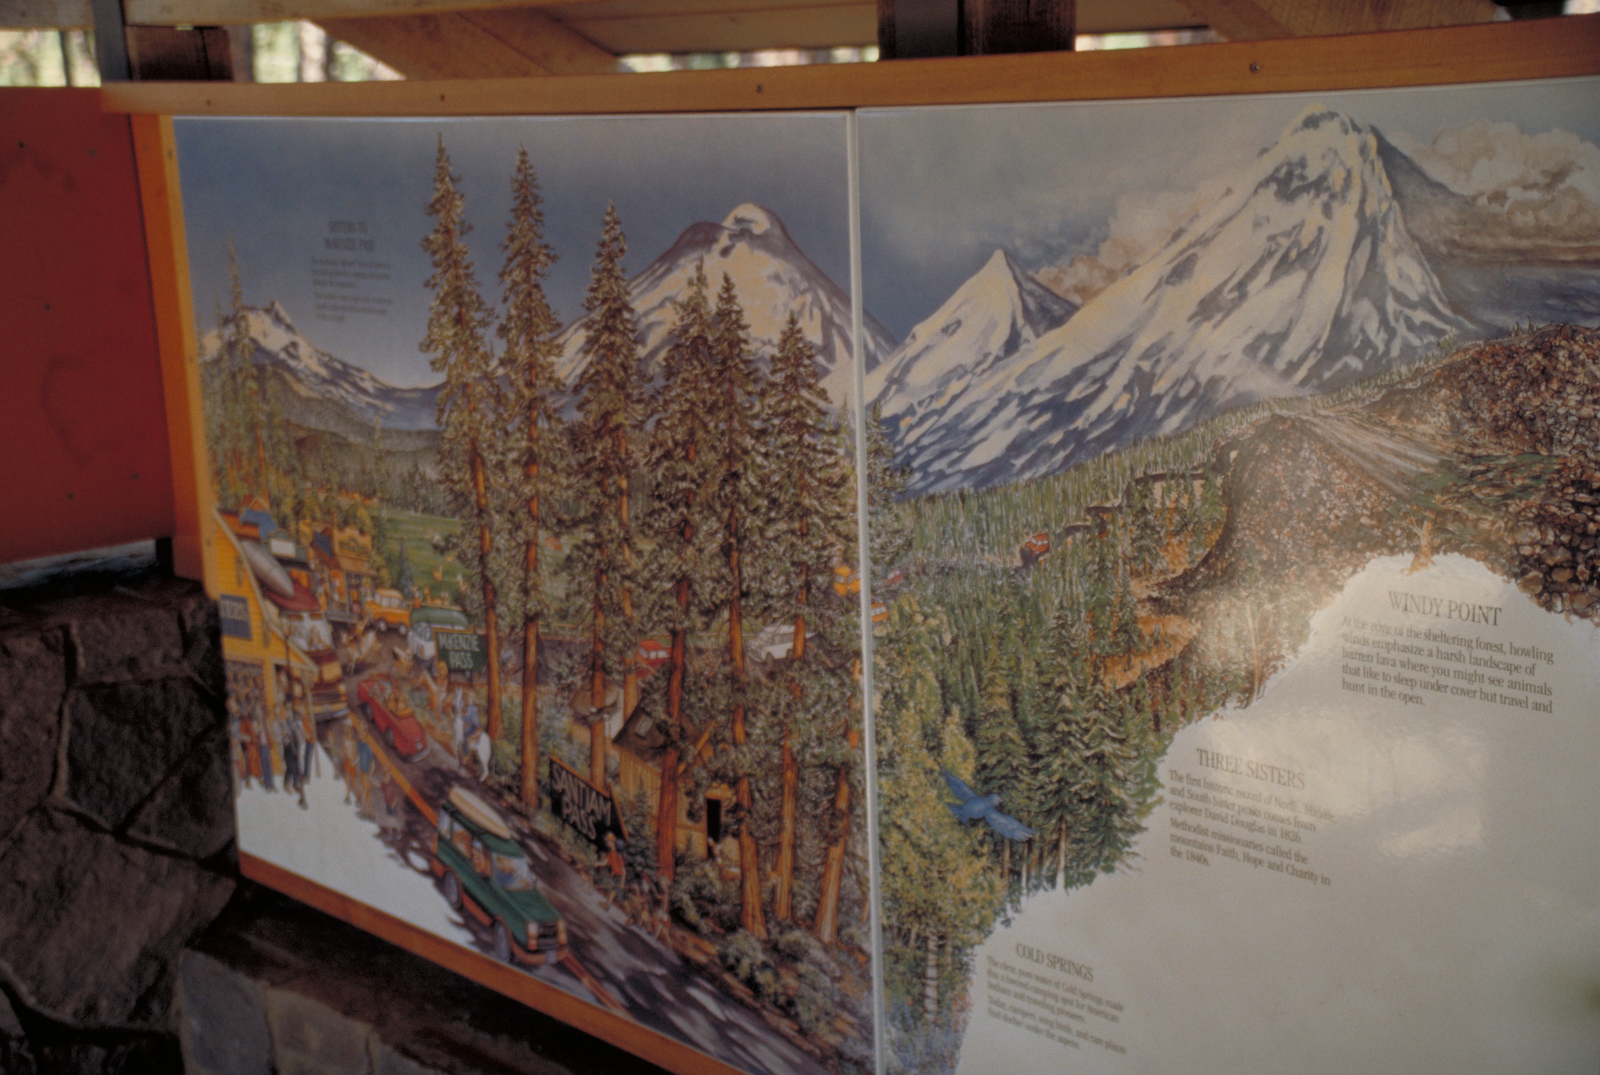 McKenzie Pass-Santiam Pass Scenic Byway - Interpretive Mural inside Visitor Center on the Cycling the Pass on McKenzie Pass - Santiam Pass Scenic Byway